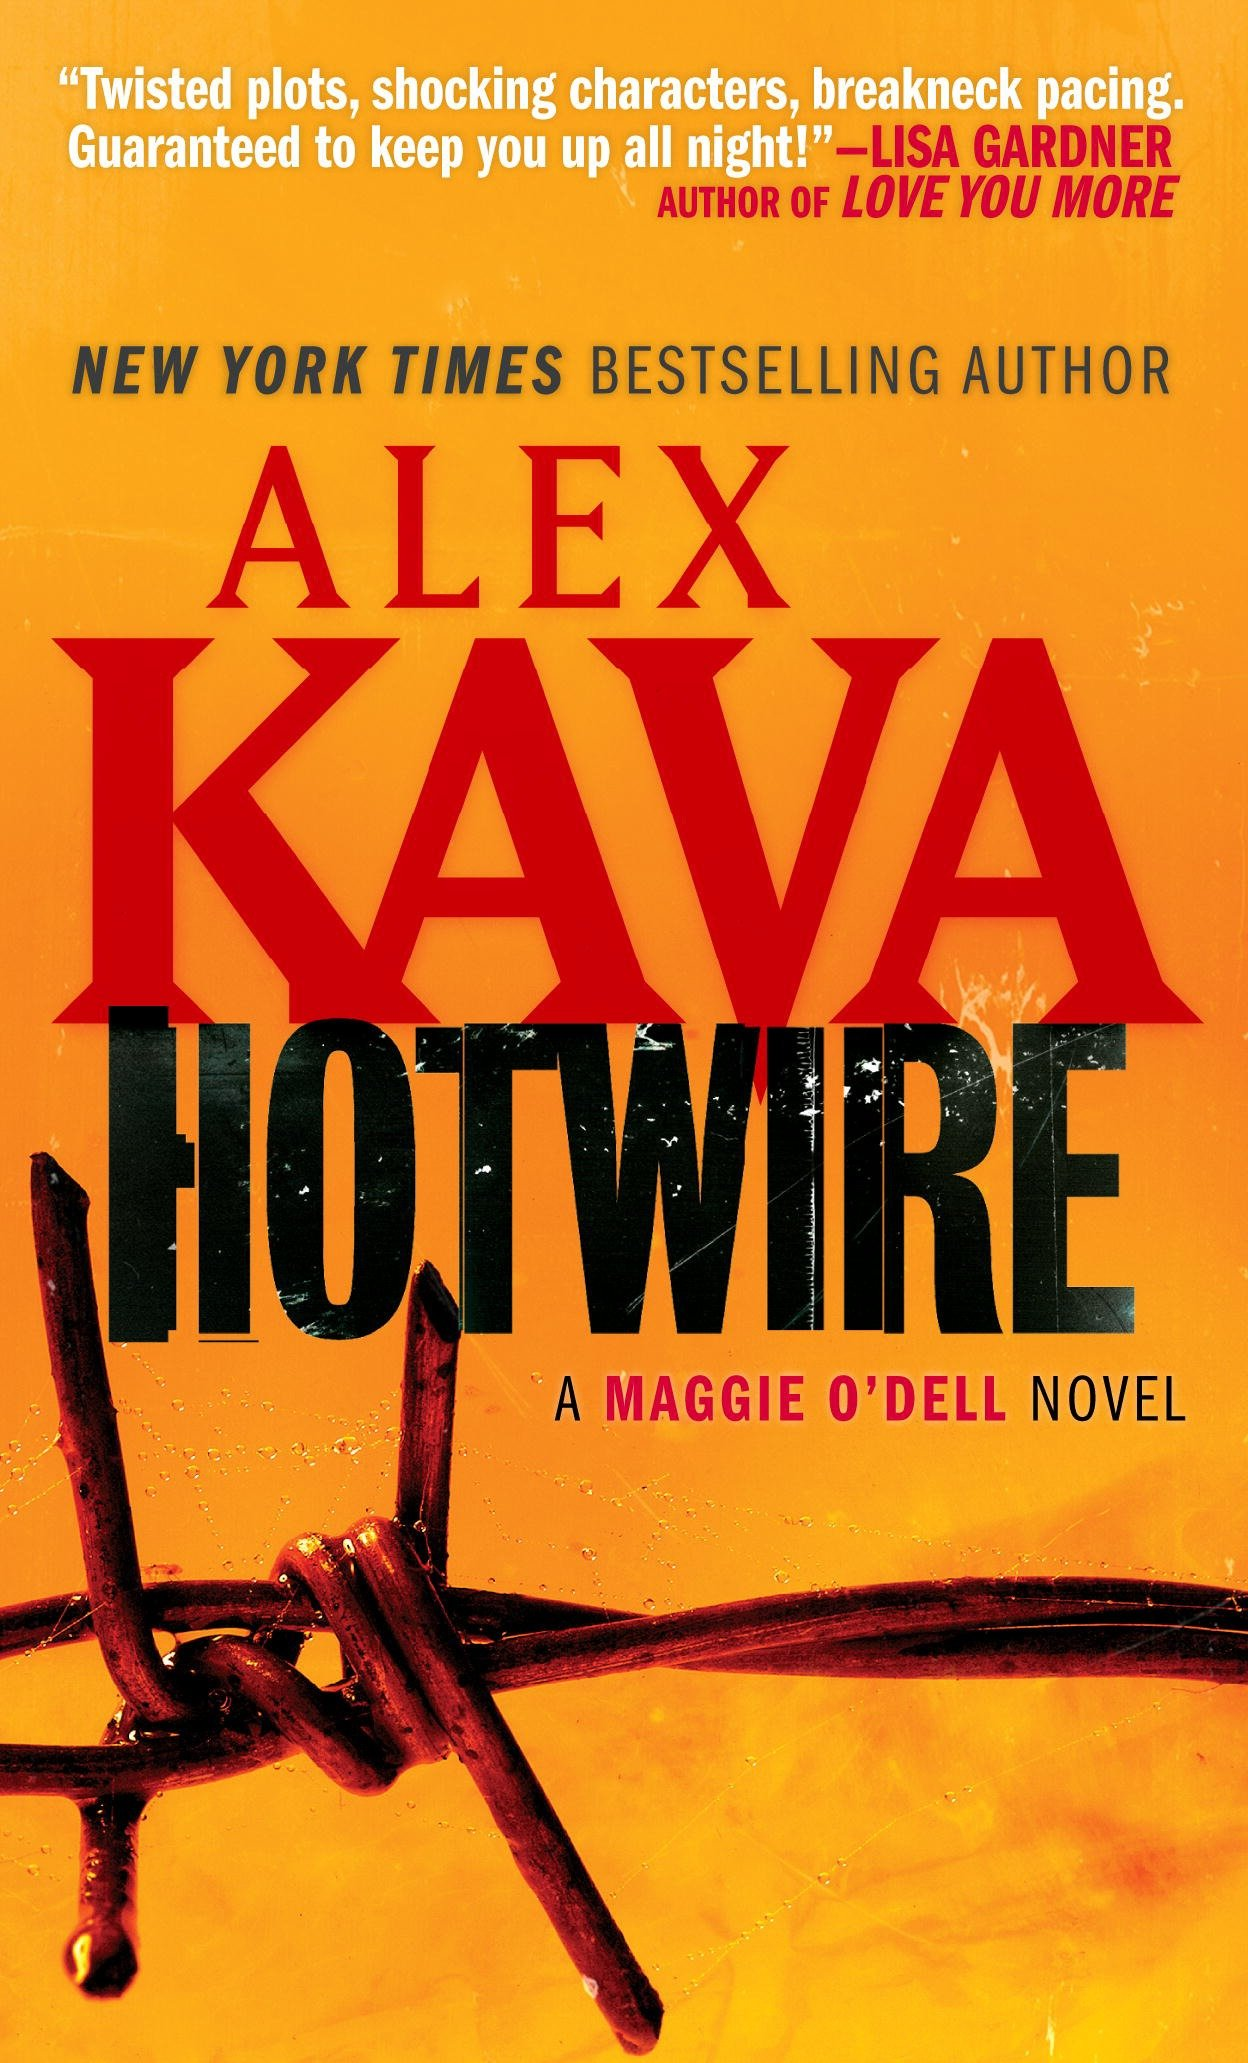 Hotwire cover image